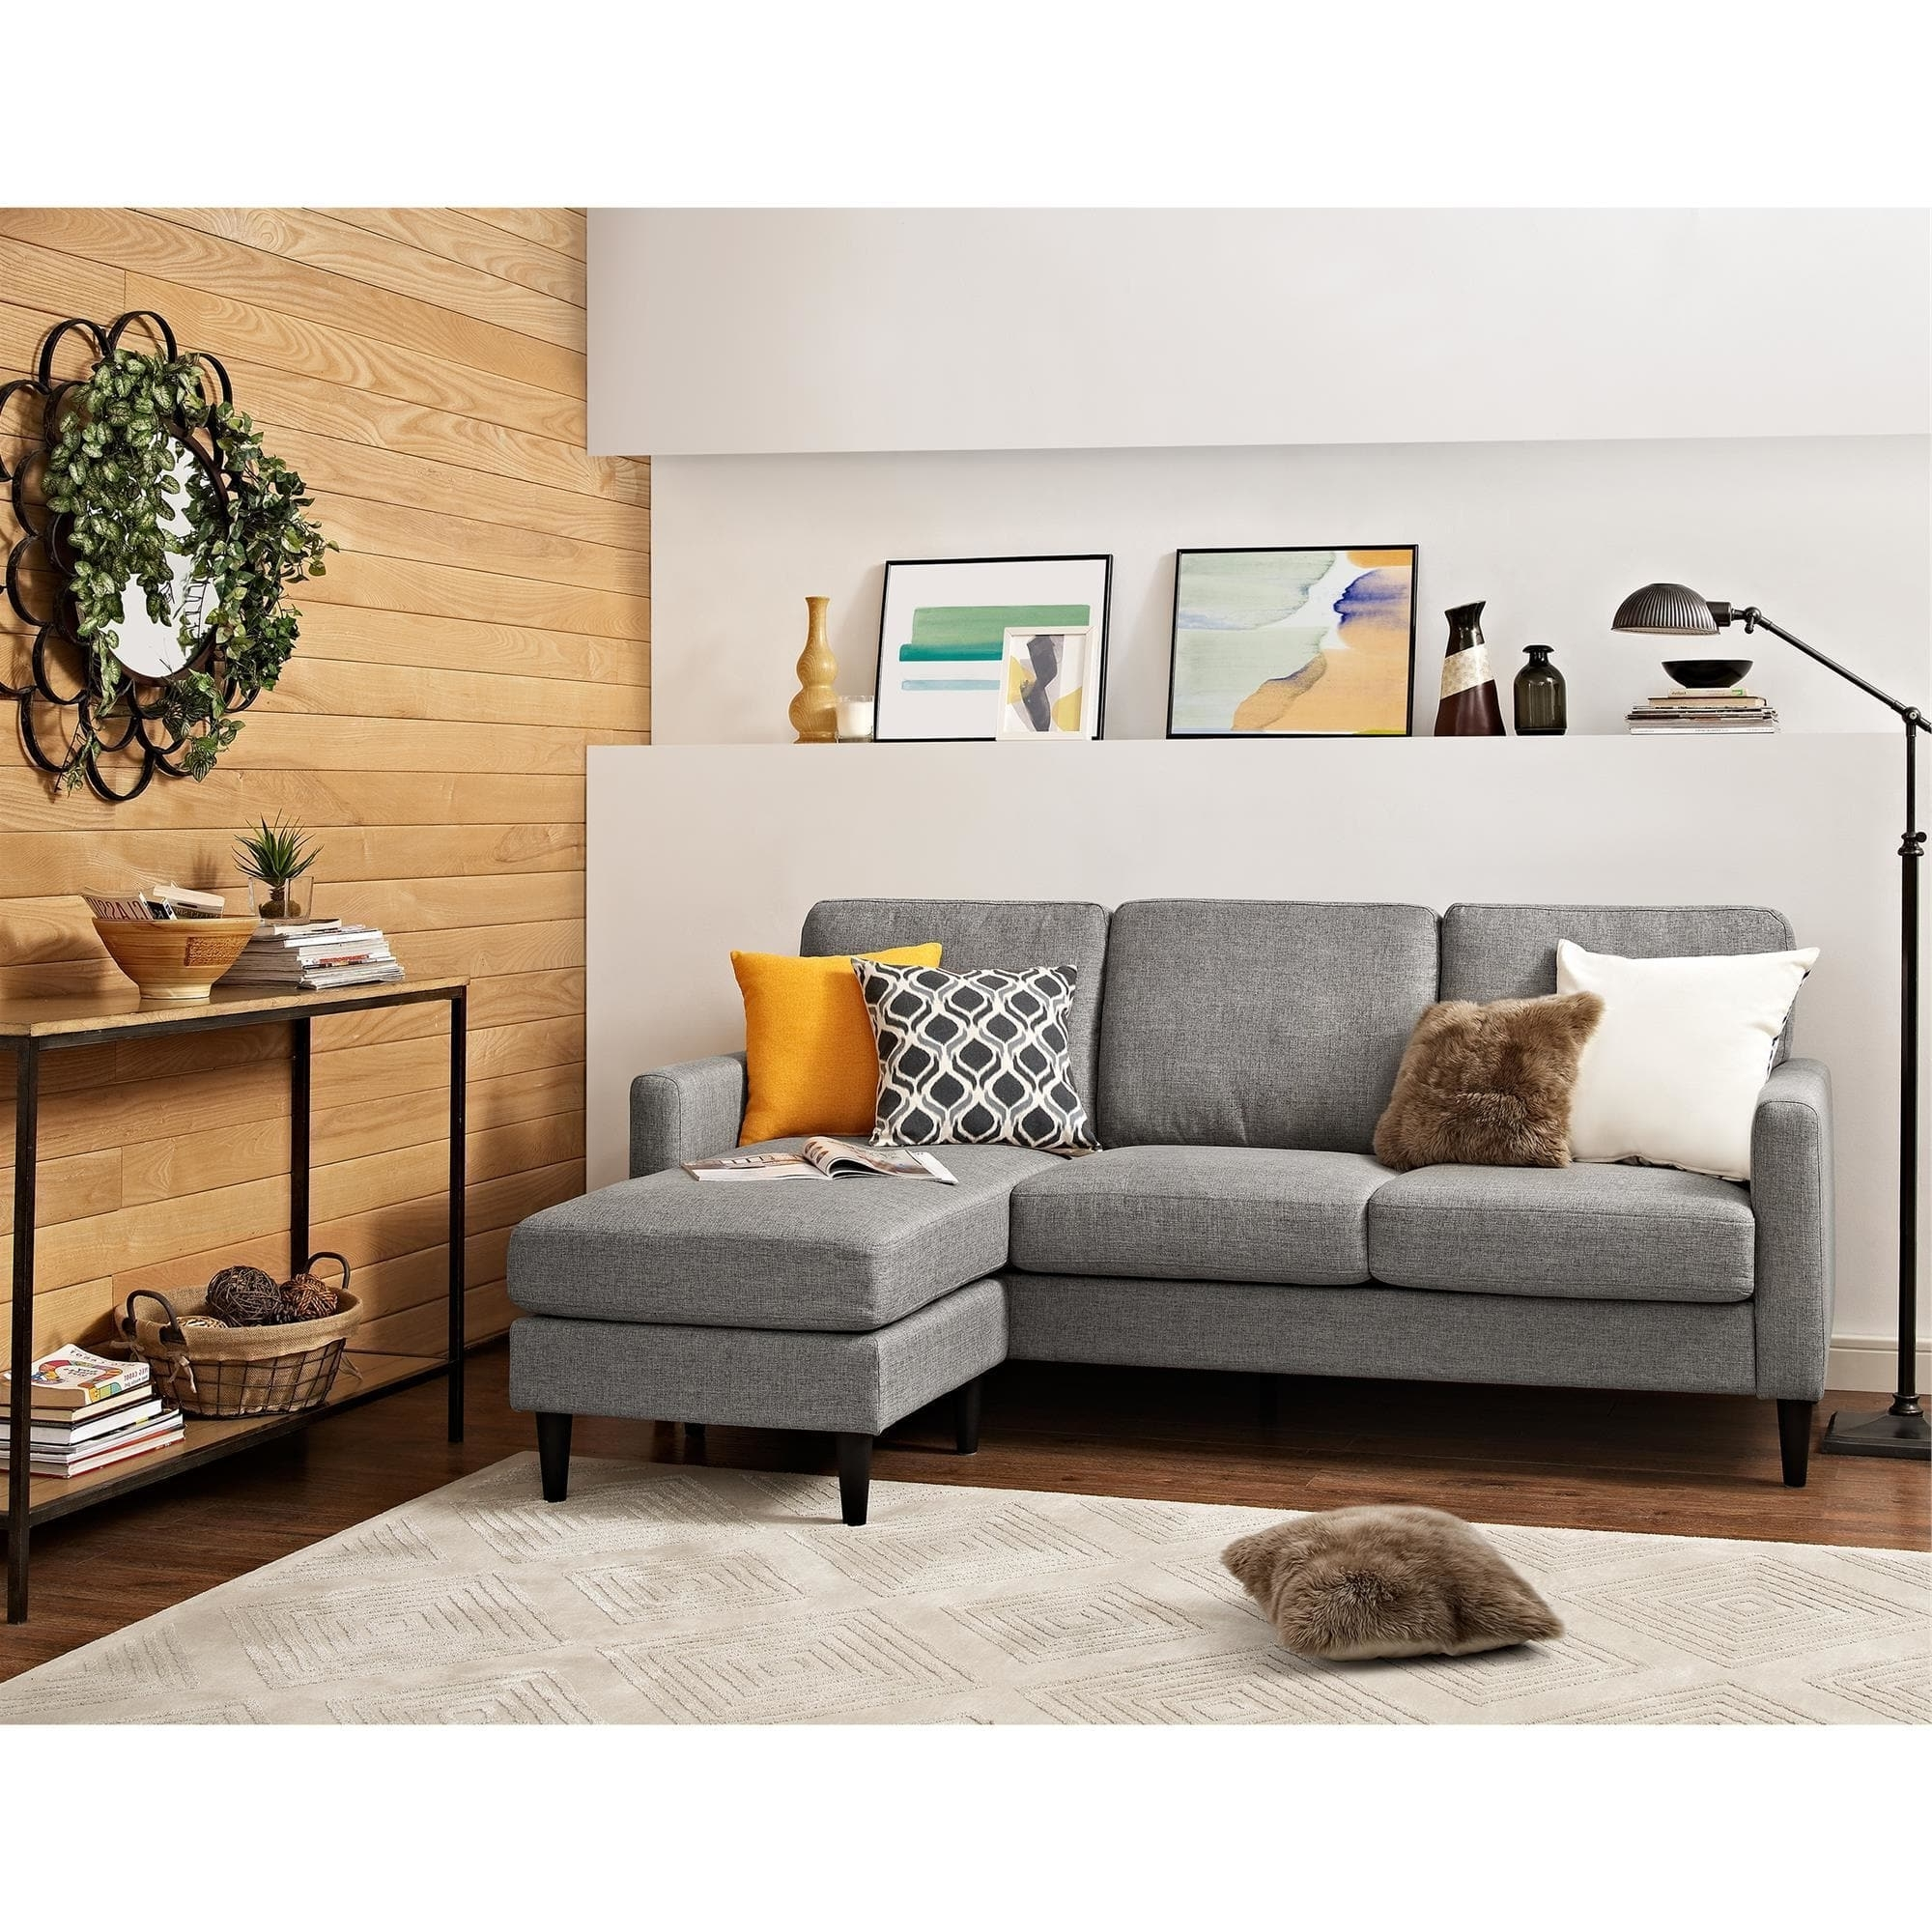 Hawaii Sectional Sofas For Well Known Dorel Living Kaci Grey Sectional Sofa – Free Shipping On Orders (View 6 of 20)